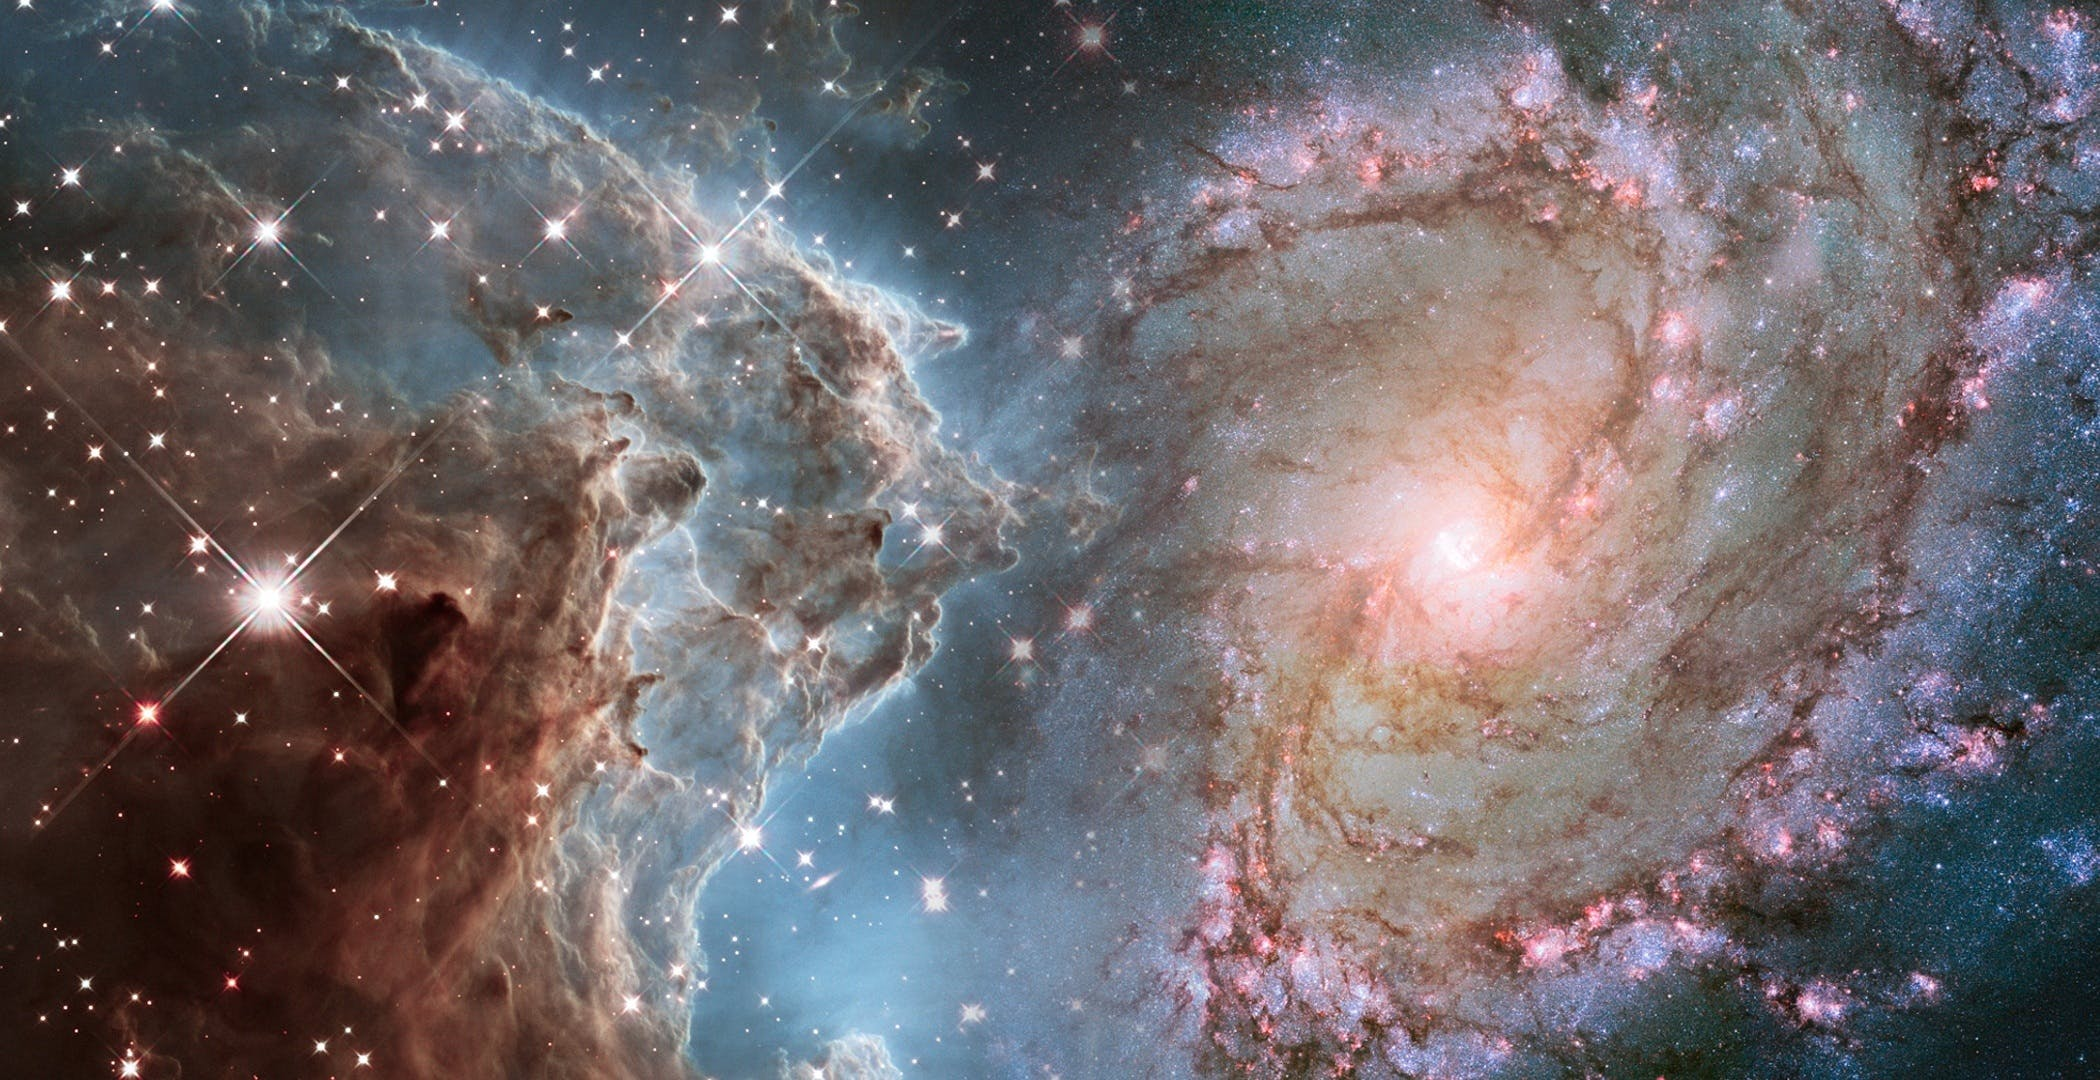 abstract, all, astronomy